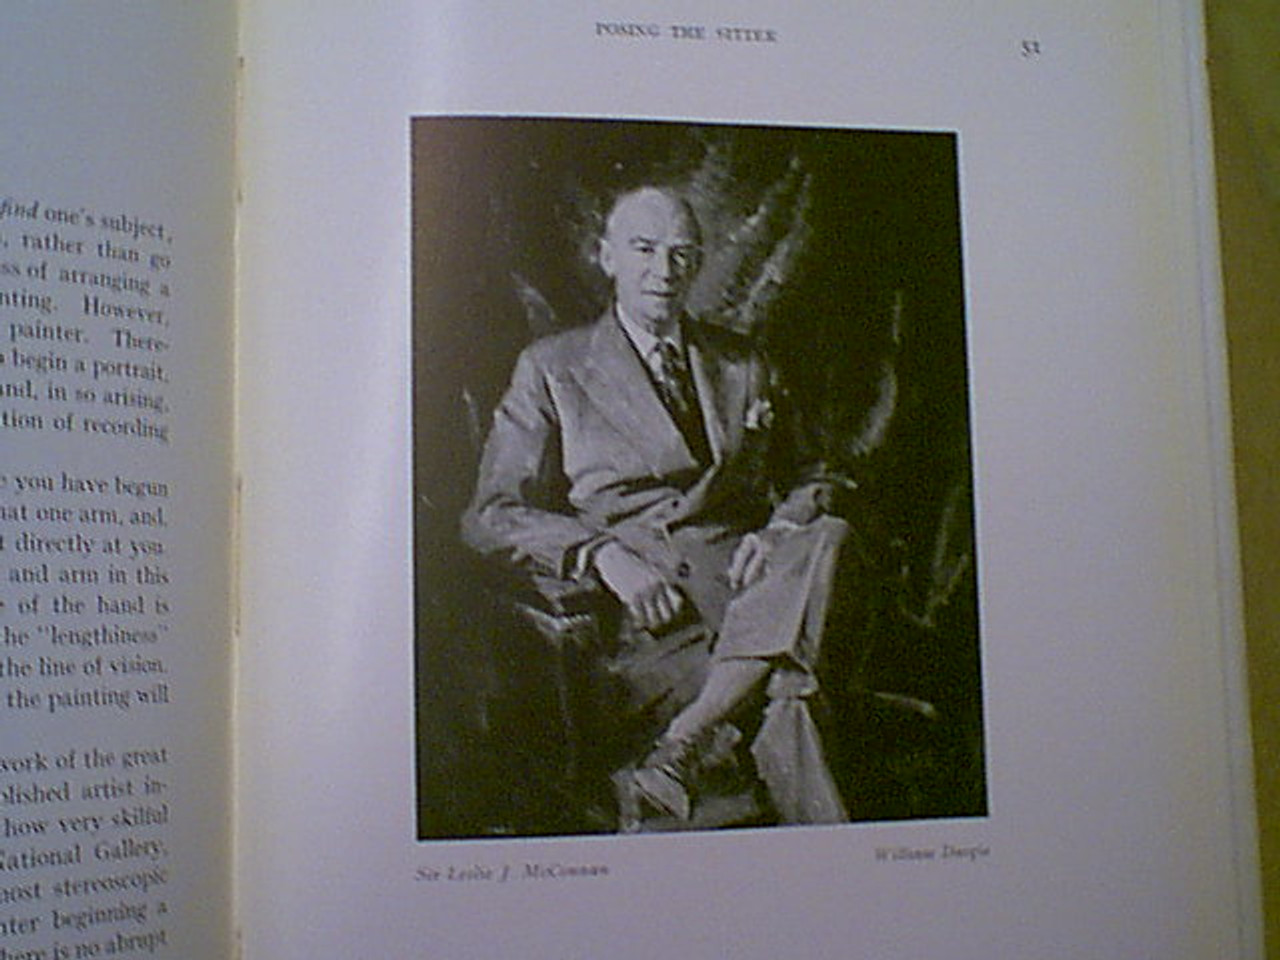 """Dargie, William """"On Painting A Portrait"""" 1957 Book Signed Autograph Illustrated England"""